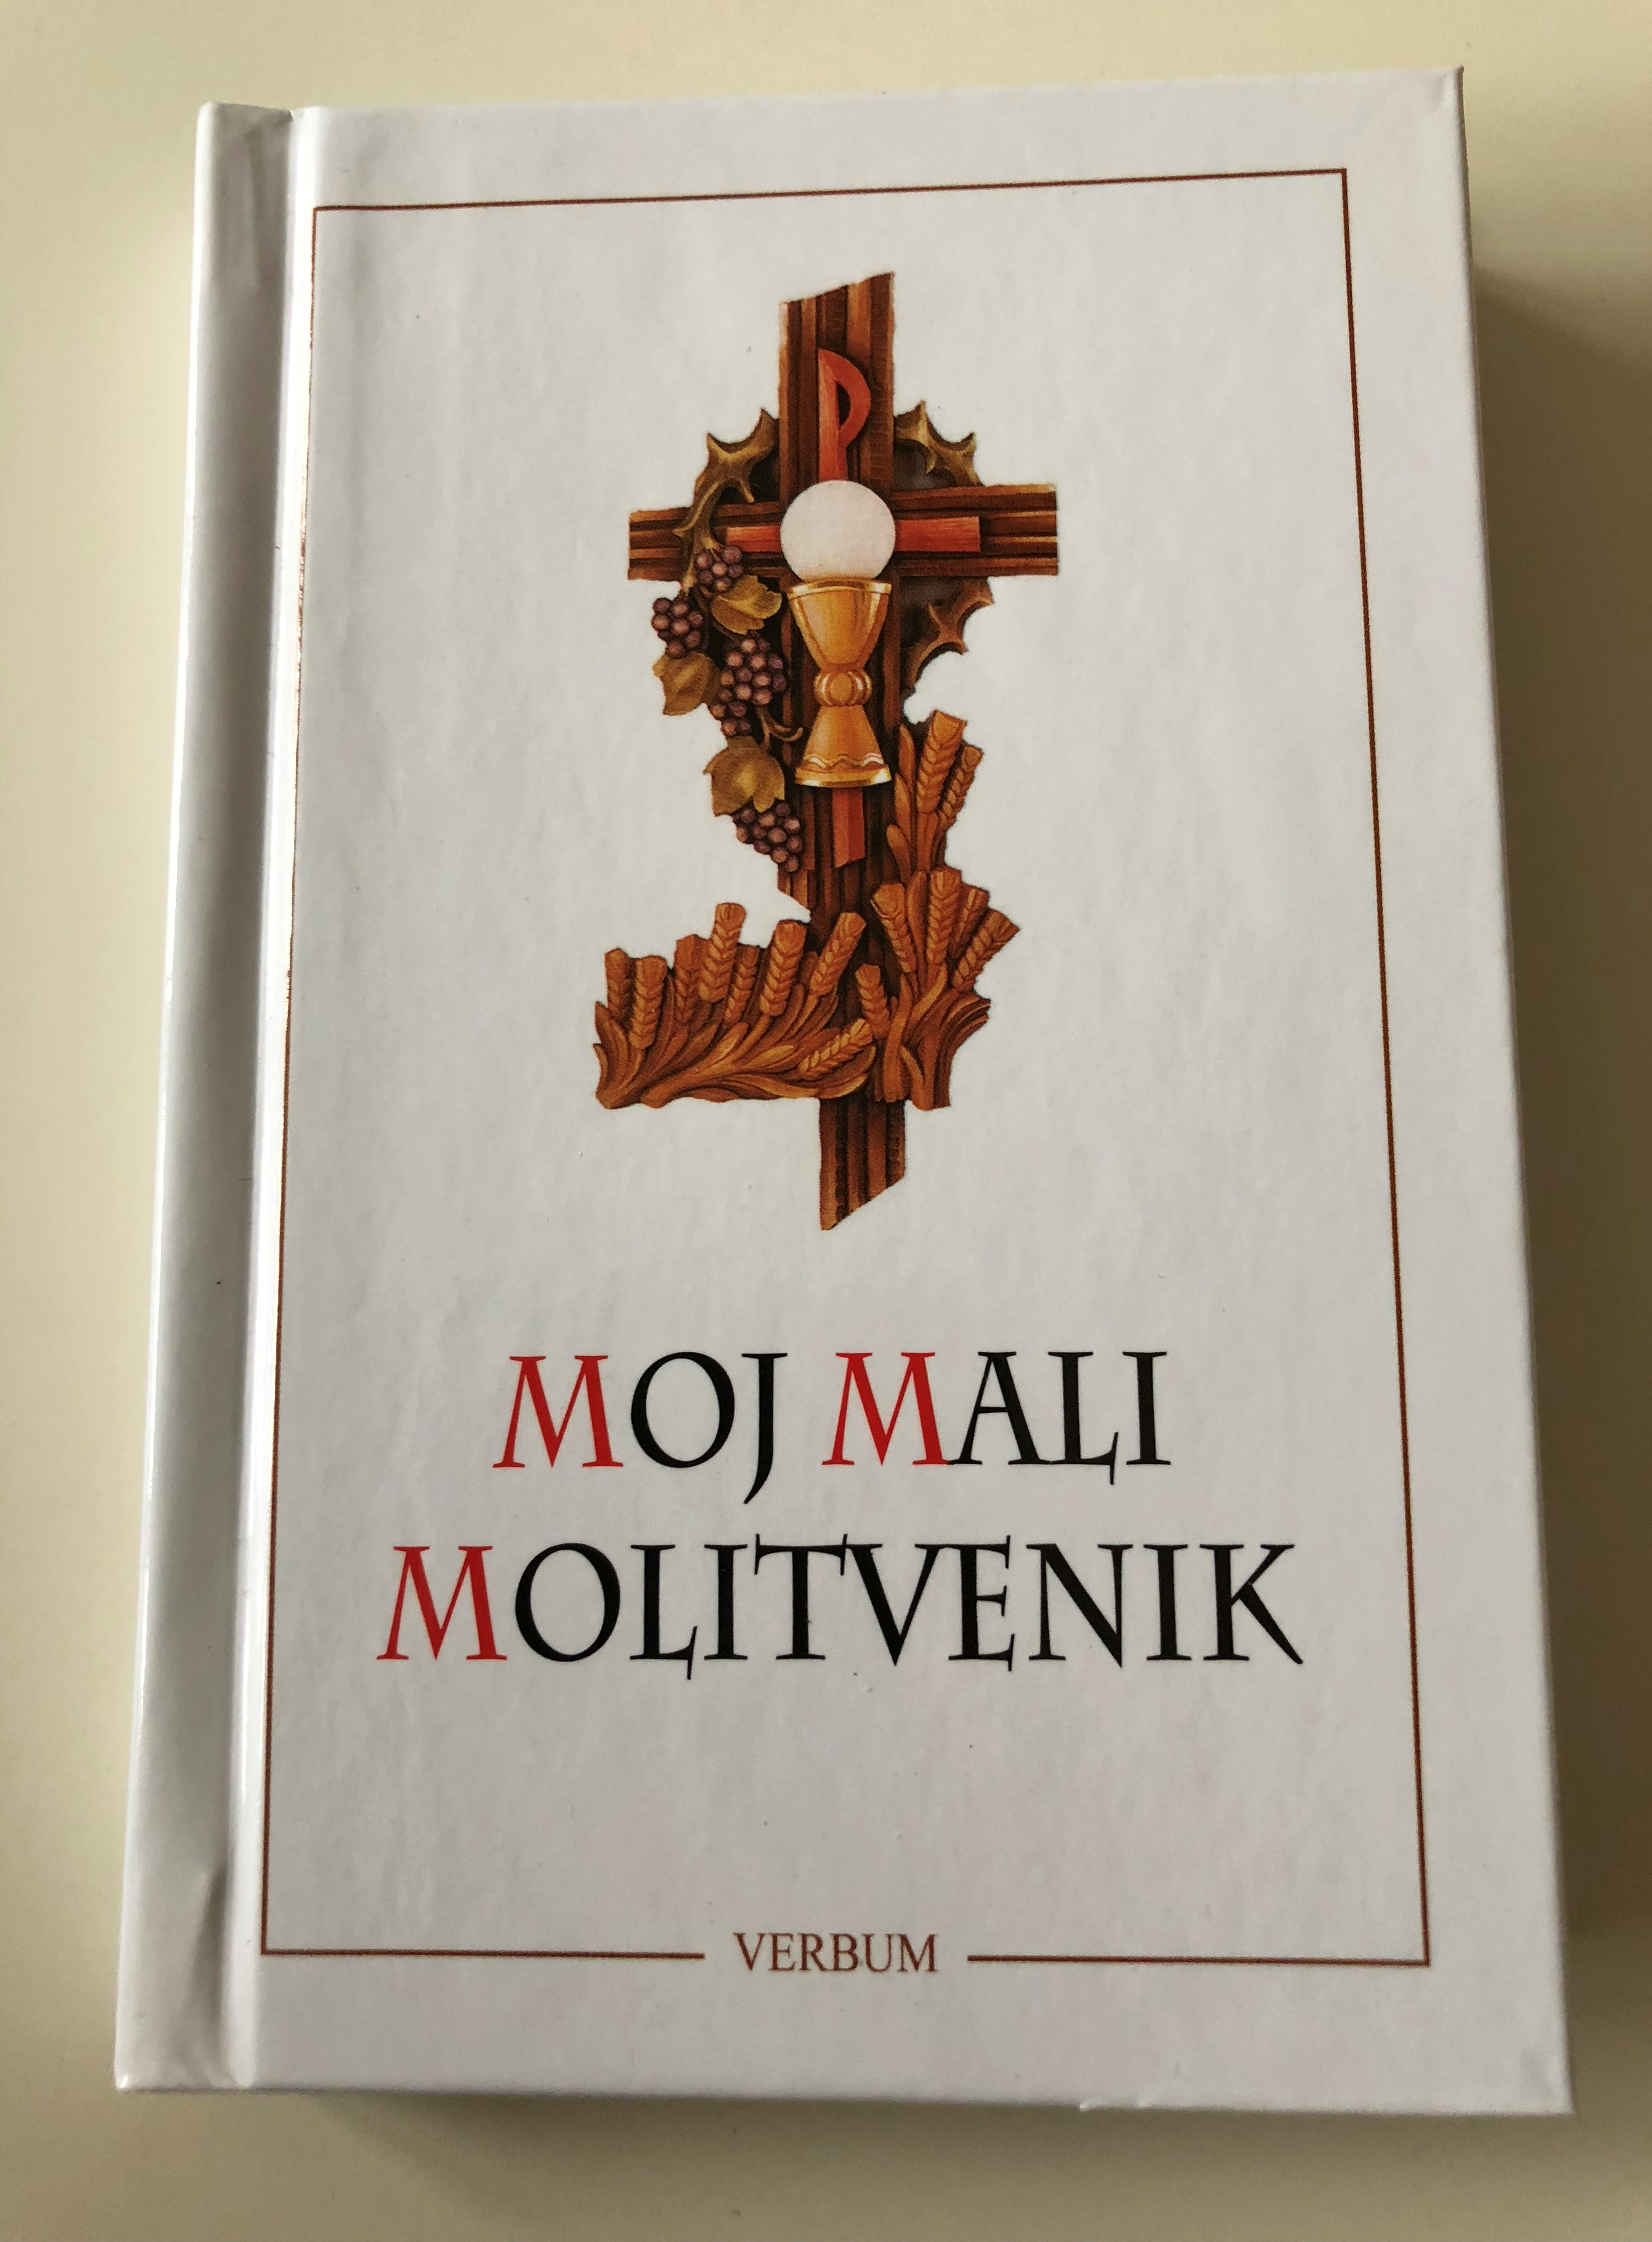 croatian-my-little-prayer-book-11th-edition-1-.jpg